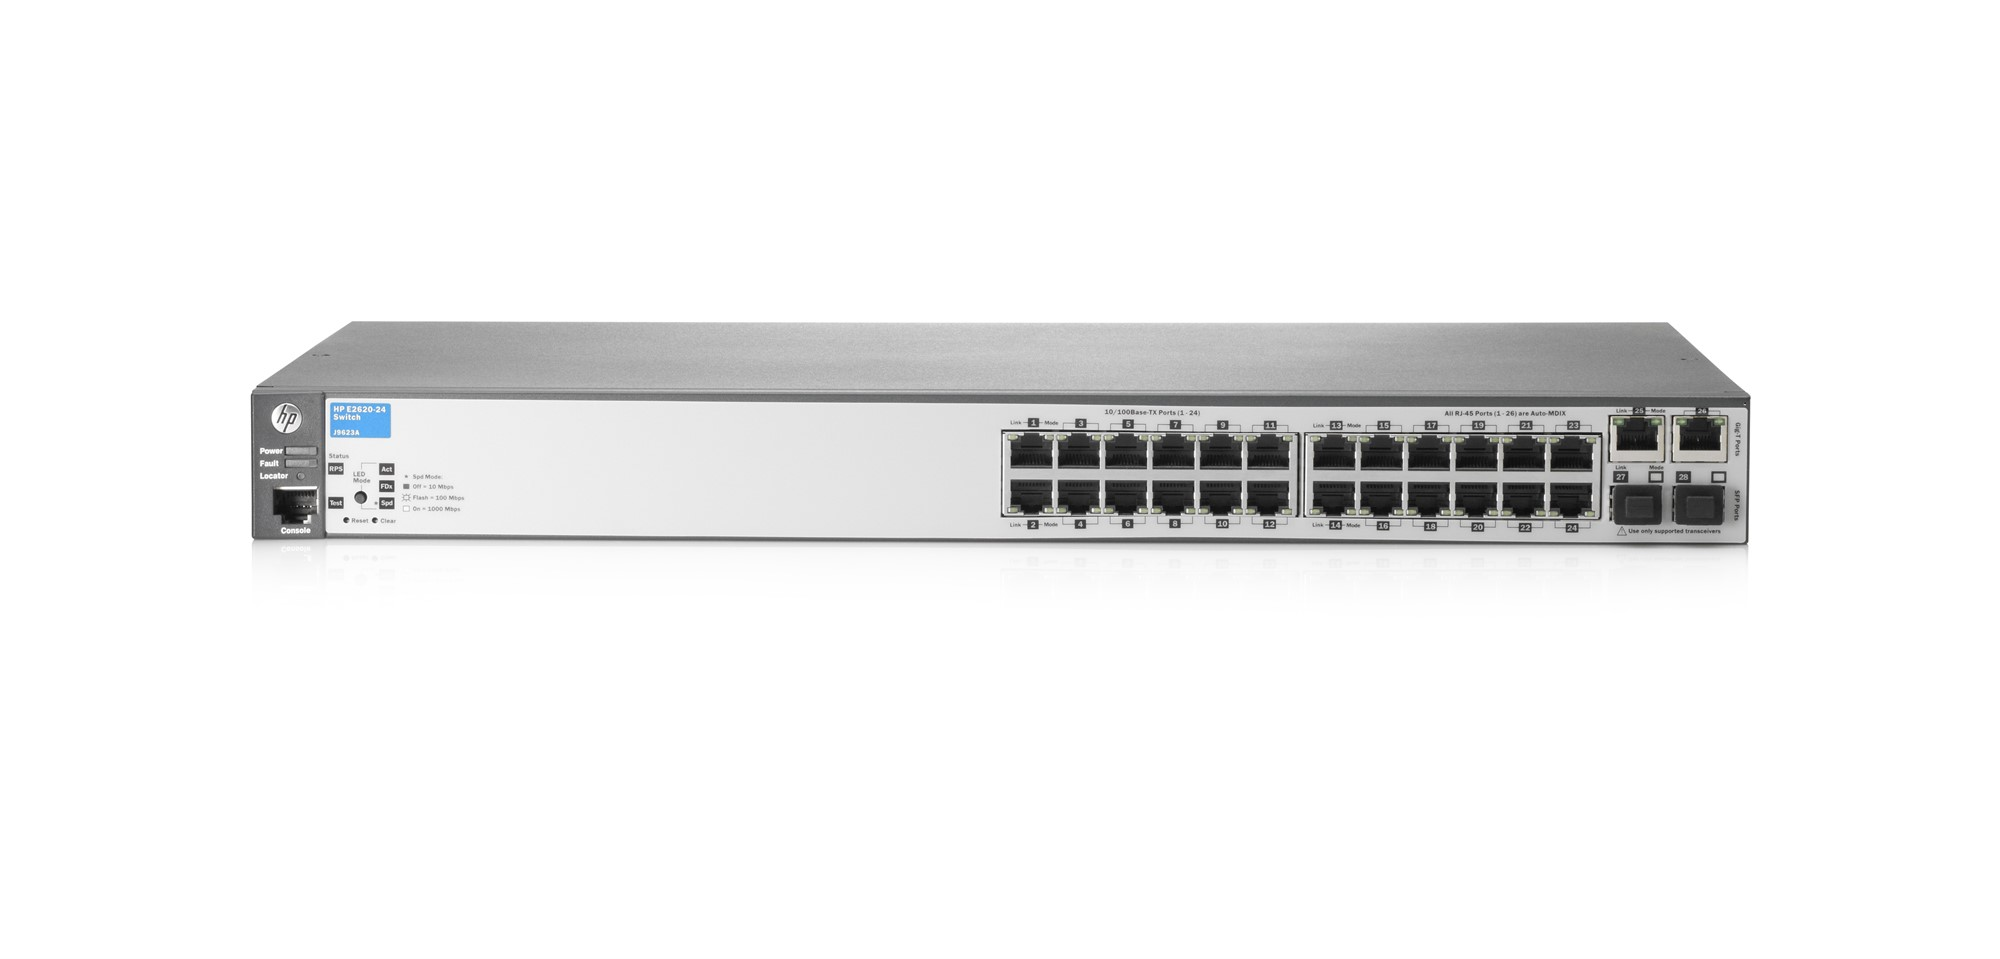 HPE J9623A#ABB 2620-24 MANAGED NETWORK SWITCH L2 FAST ETHERNET (10/100) 1U GREY